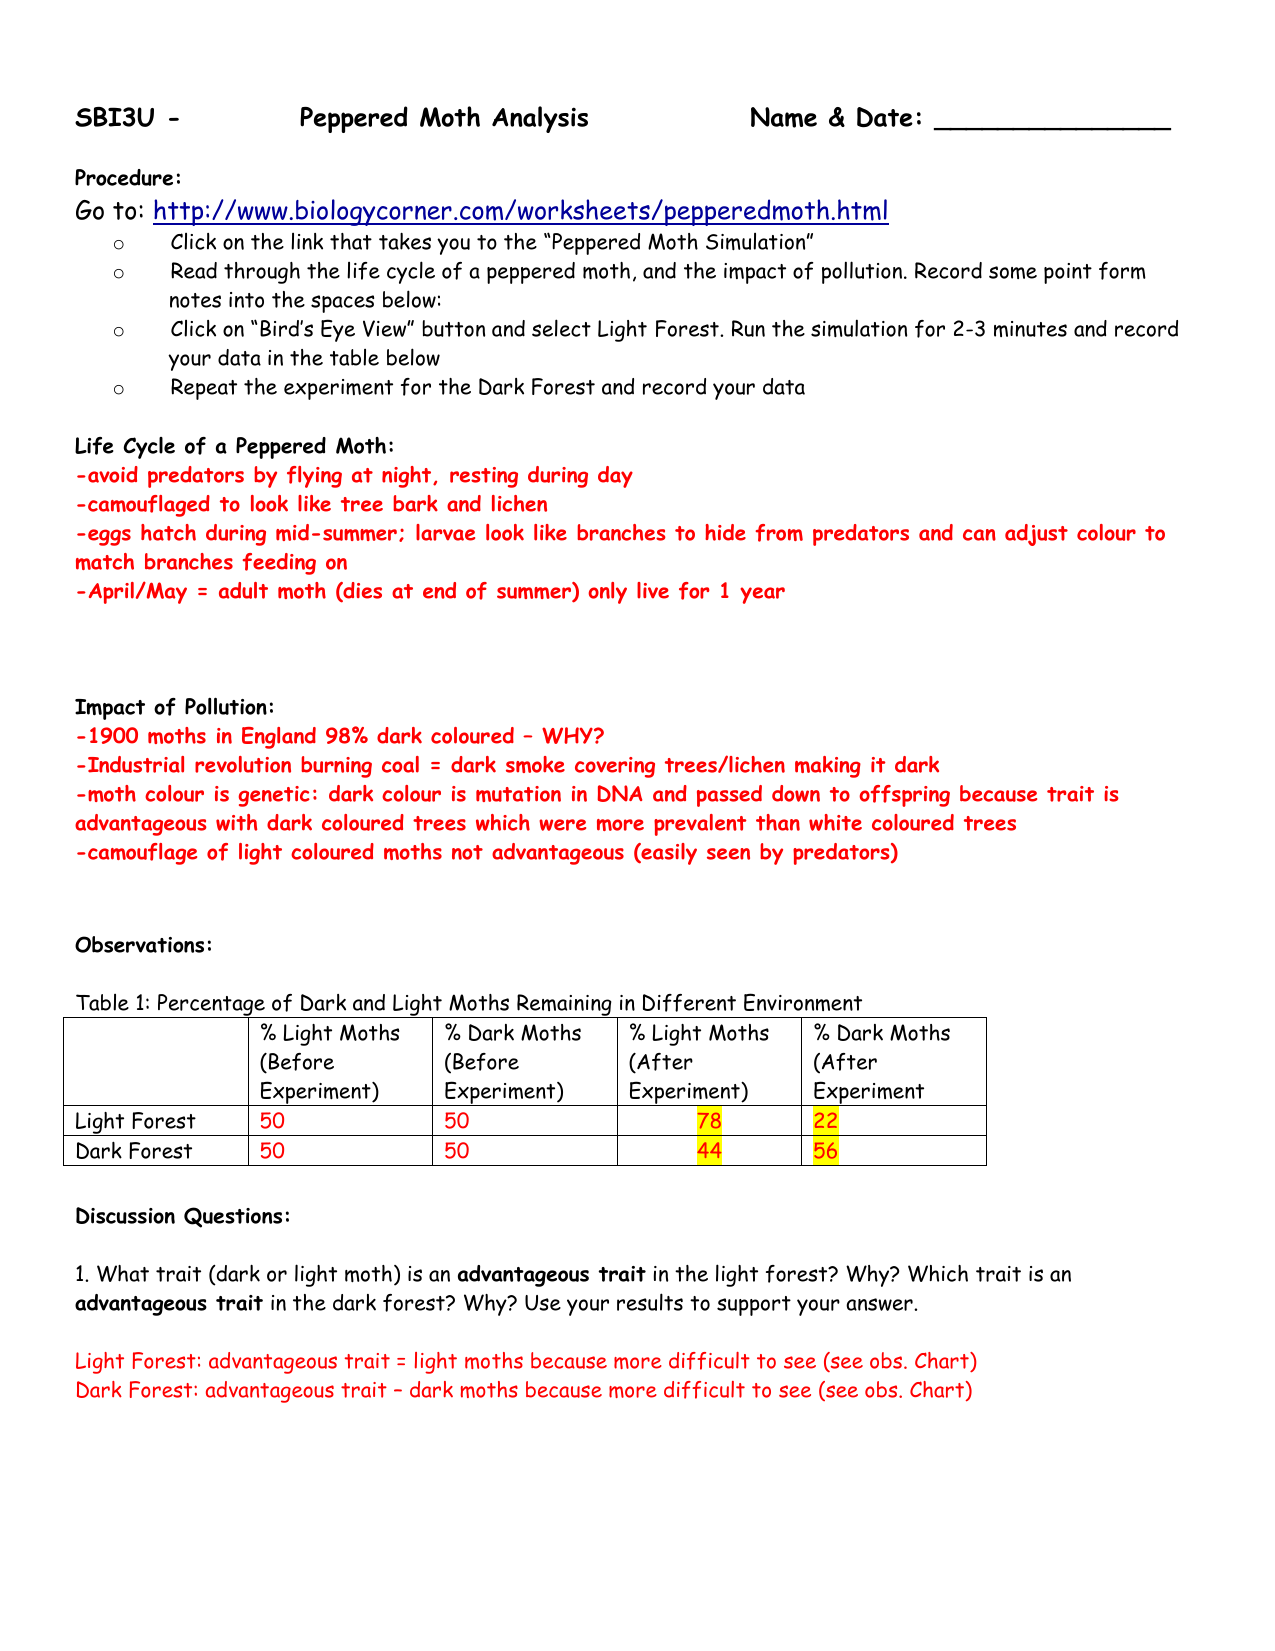 3-Peppered moth Simulation Analysis ANSWERS